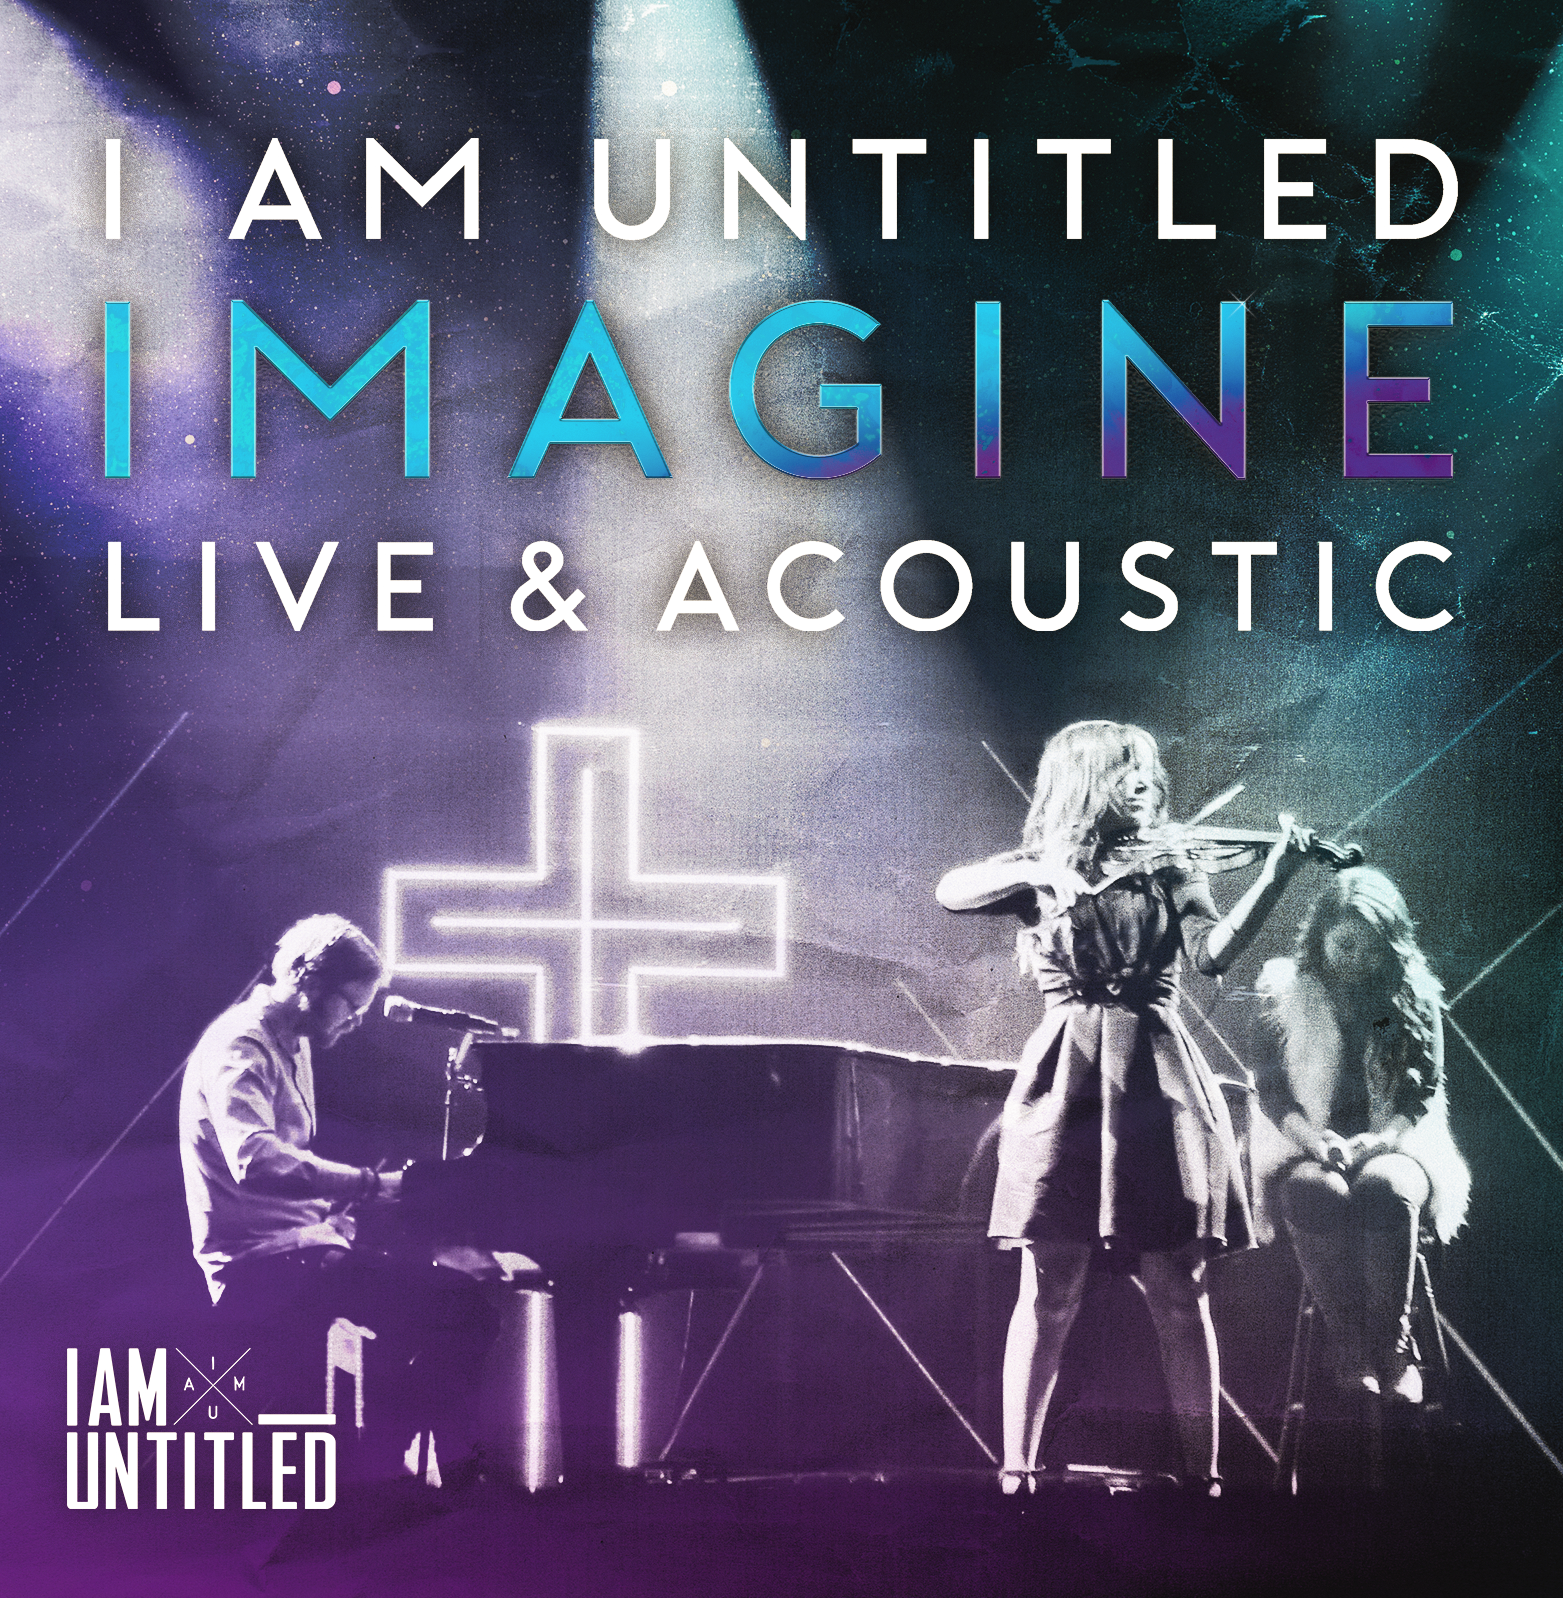 IMAGINE Live & Acoustic CD (Free Shipping) — I Am Untitled